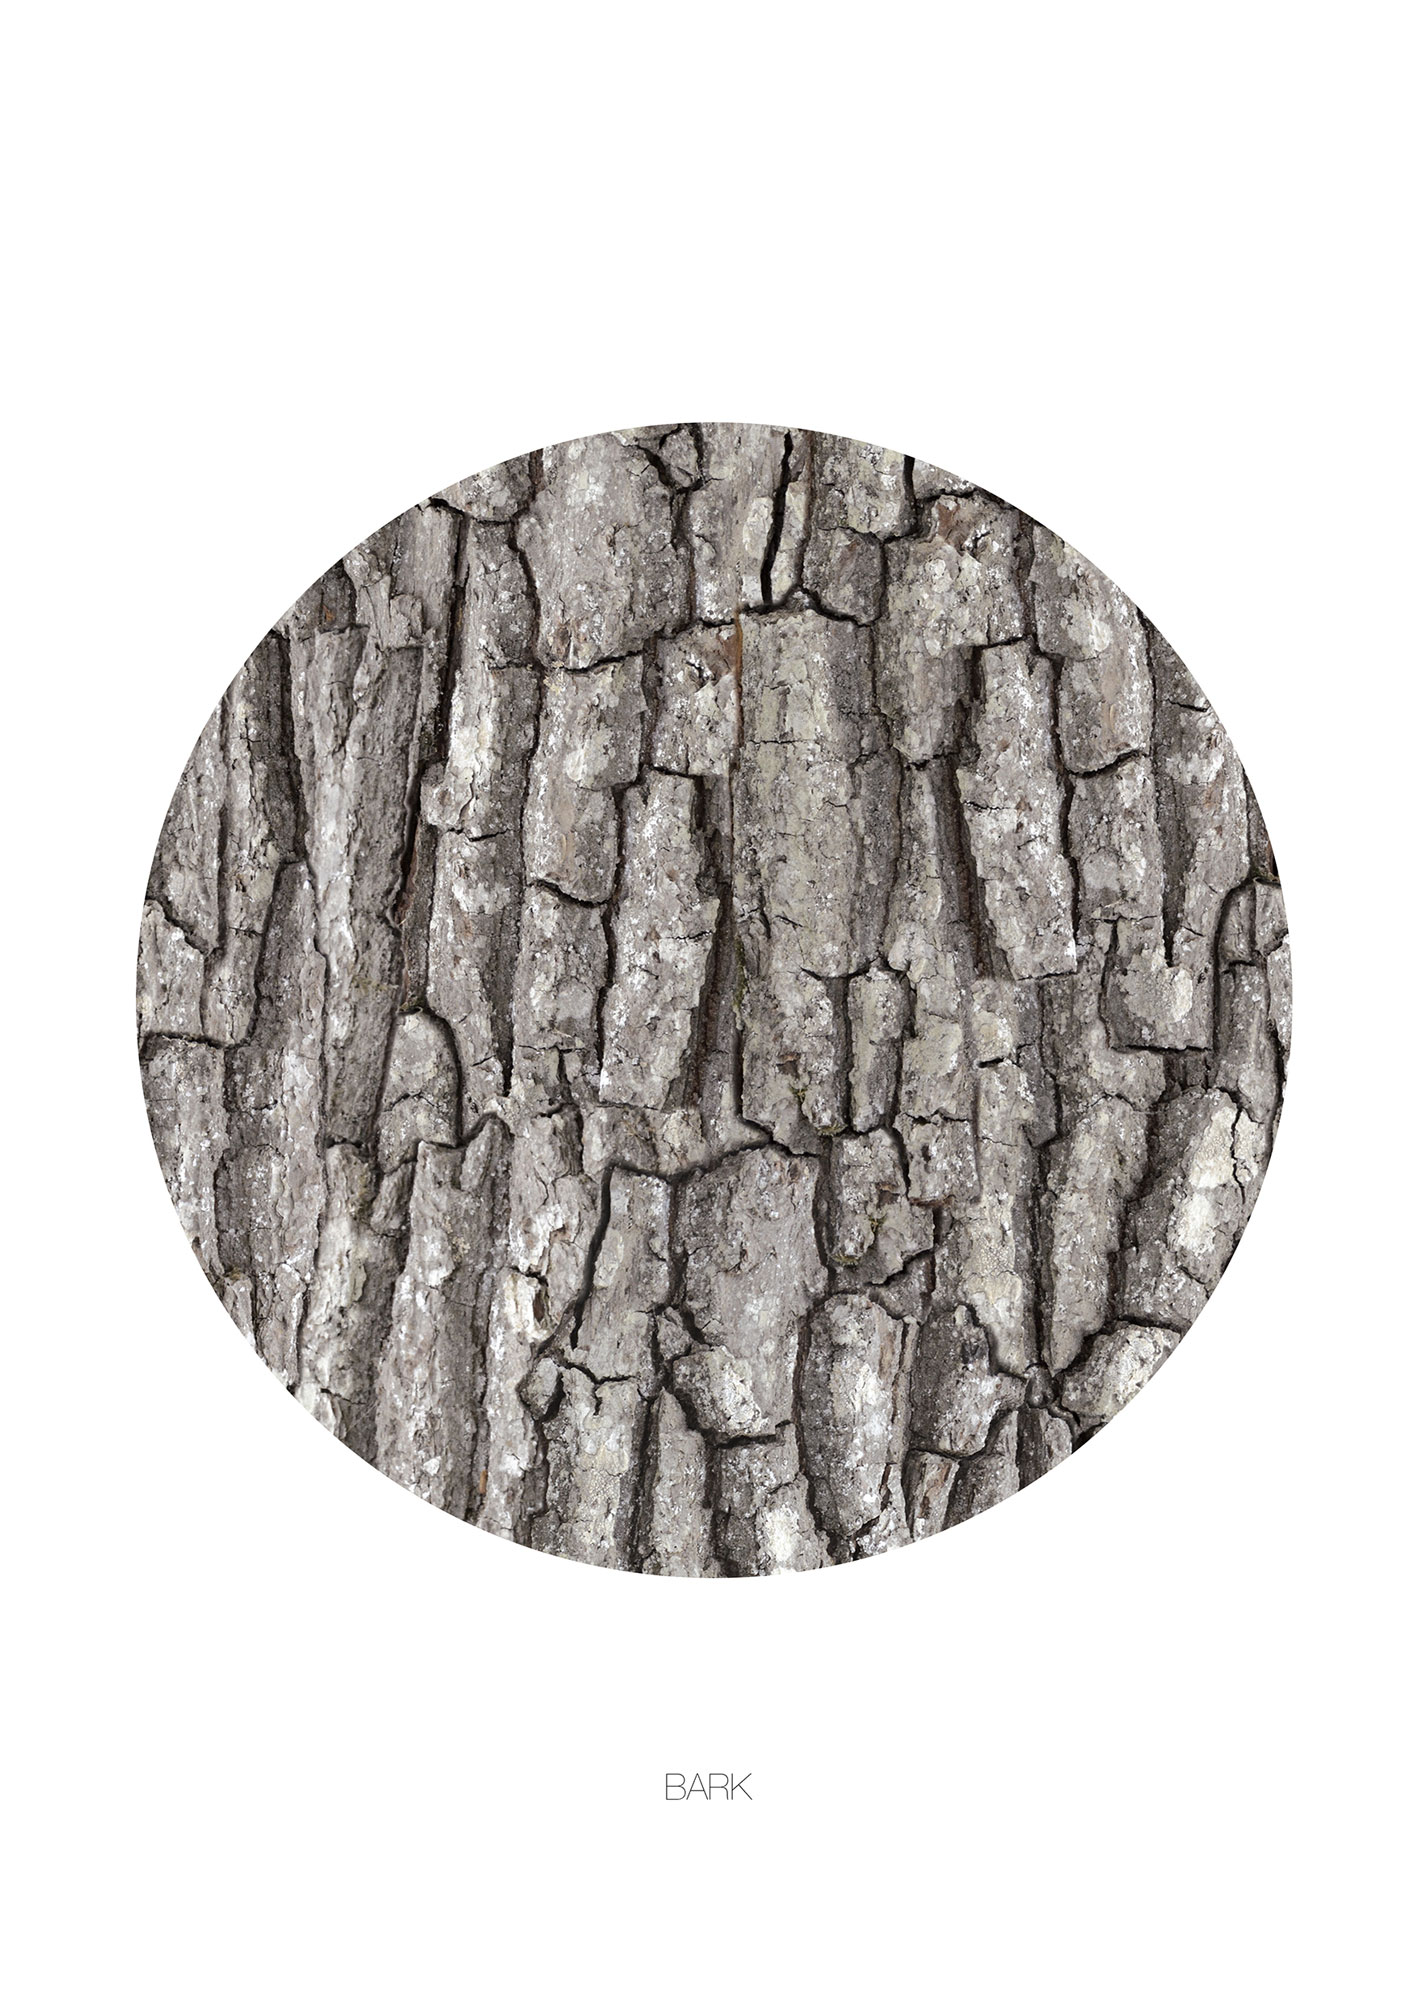 Image of   BARK - CIRCLE-A3